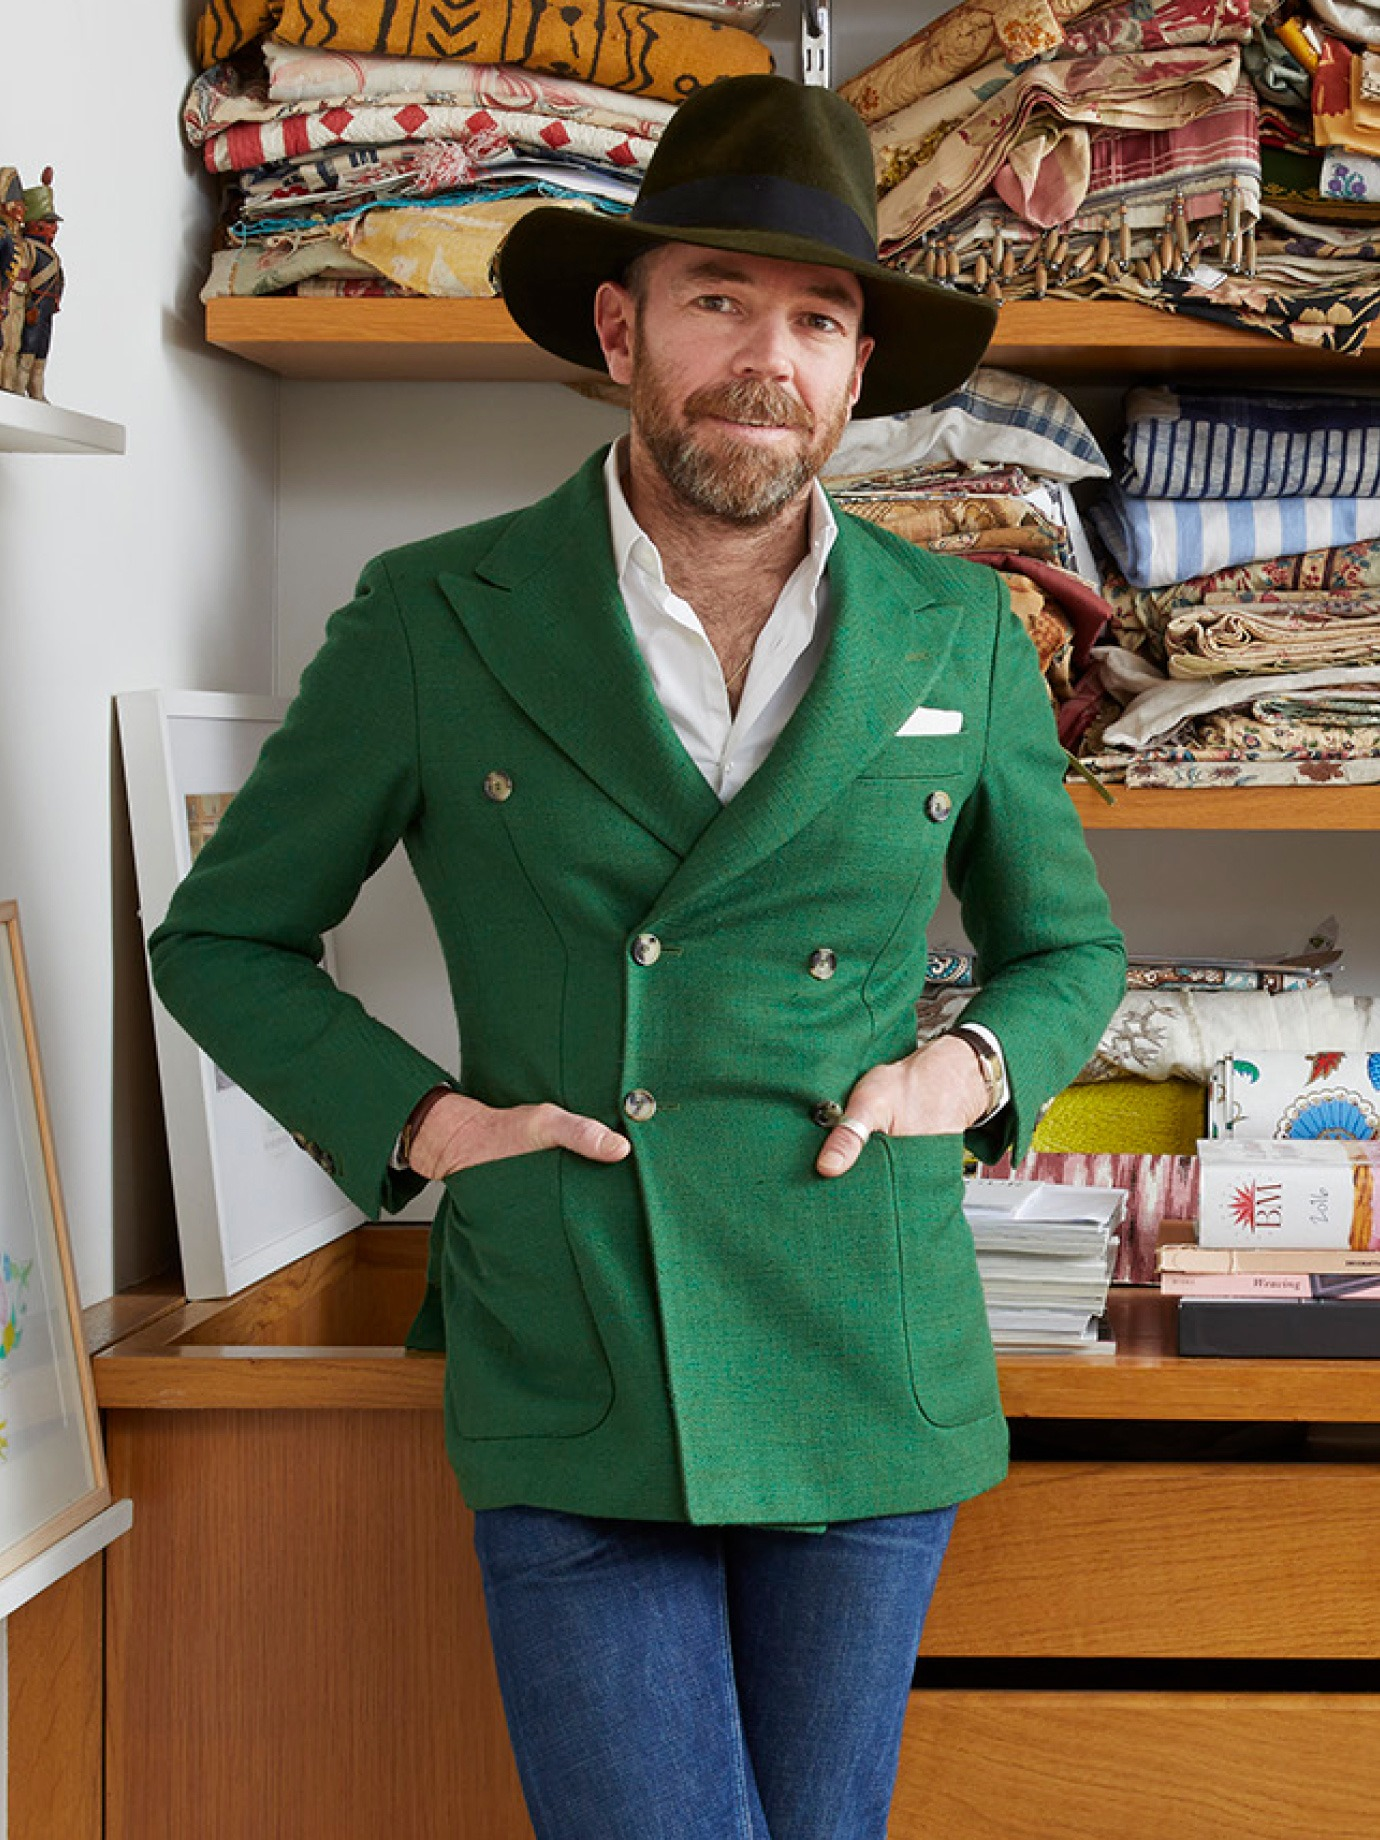 A man in a broad hat and green jacket leaning against a cabinet containing swatches.